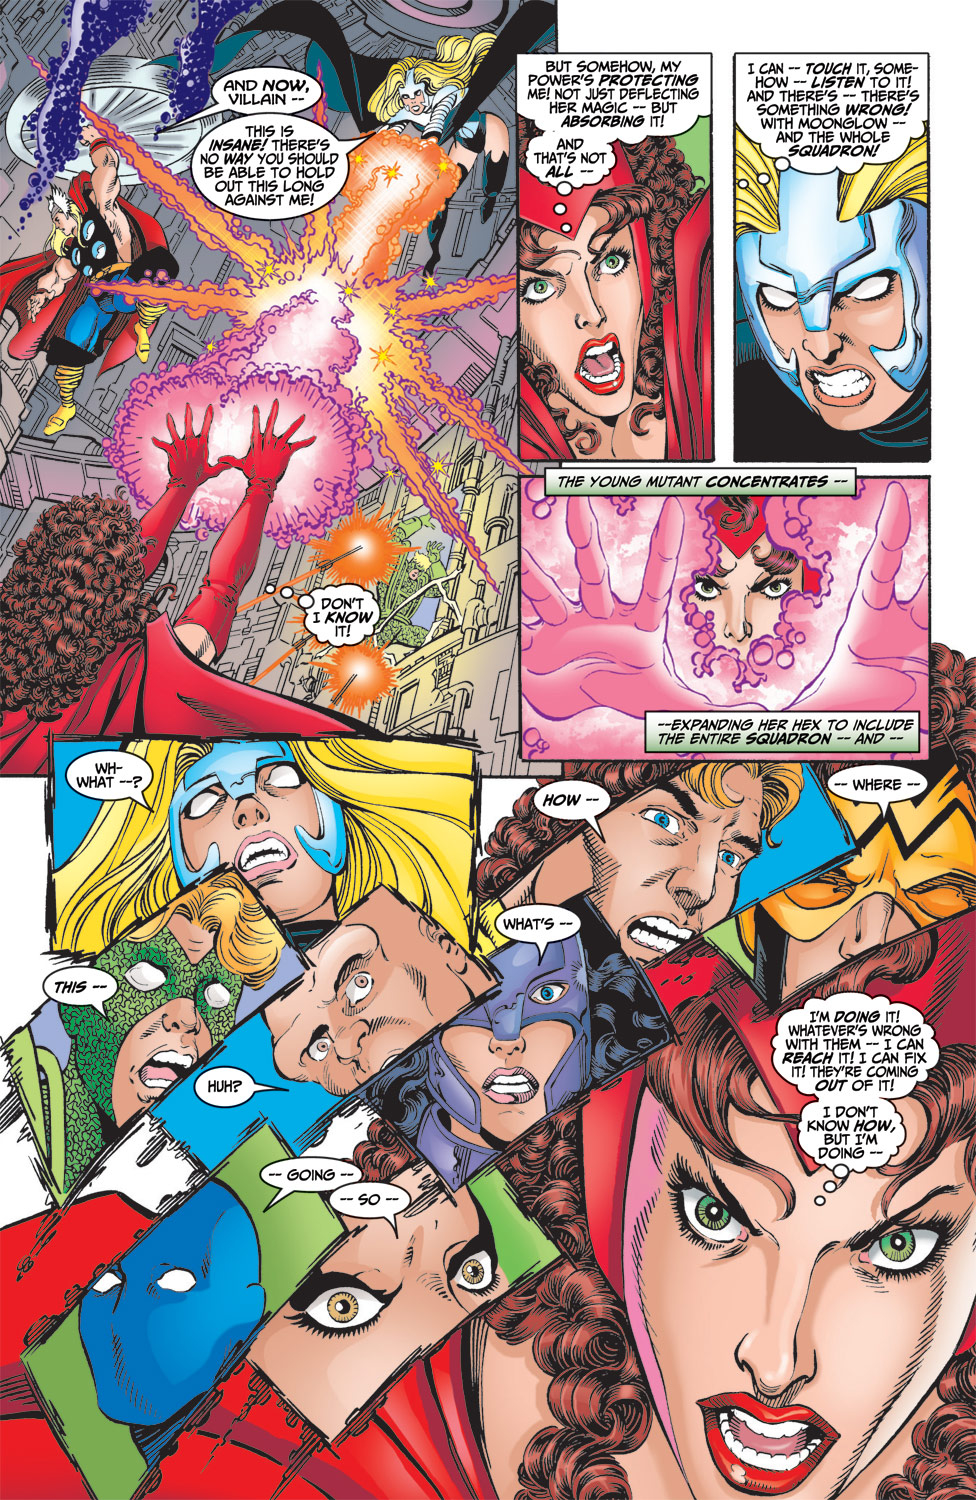 Read online Avengers (1998) comic -  Issue #6 - 19